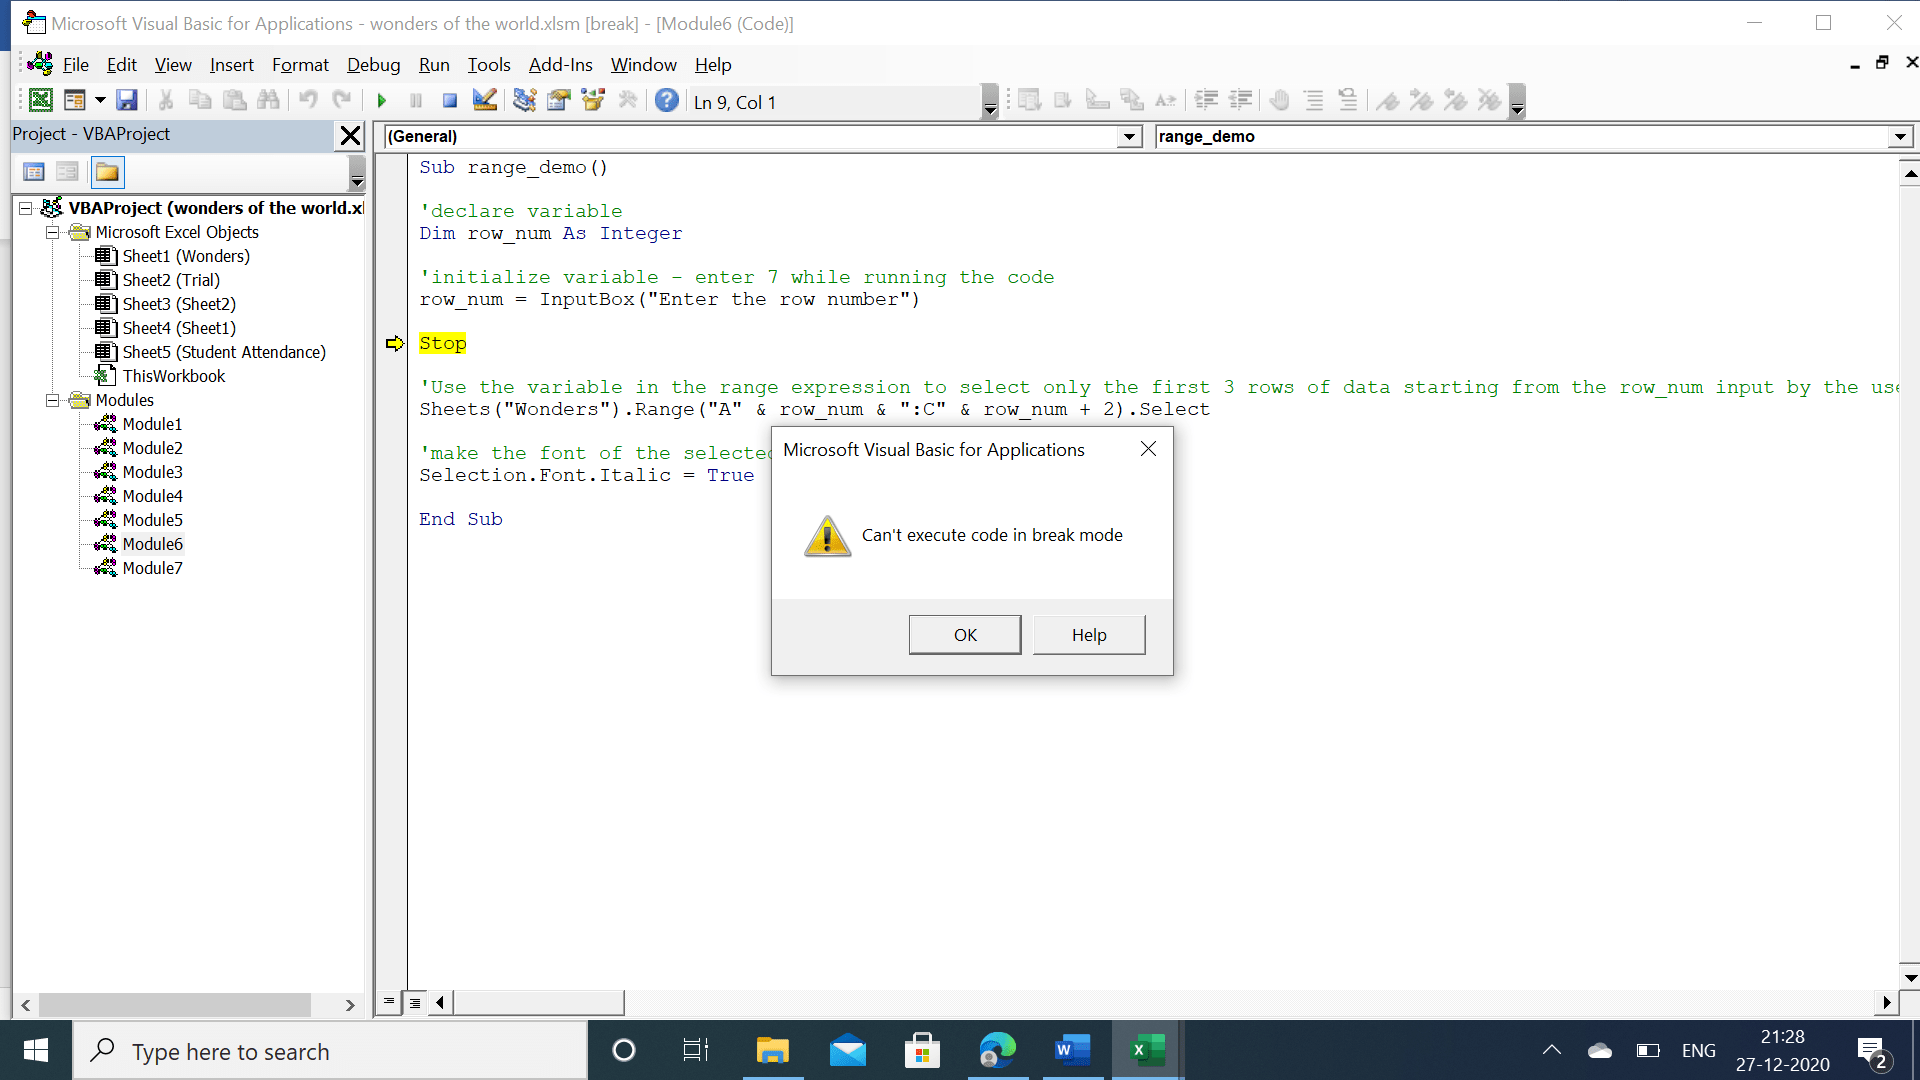 Can't execute code in break mode (editor in break mode)